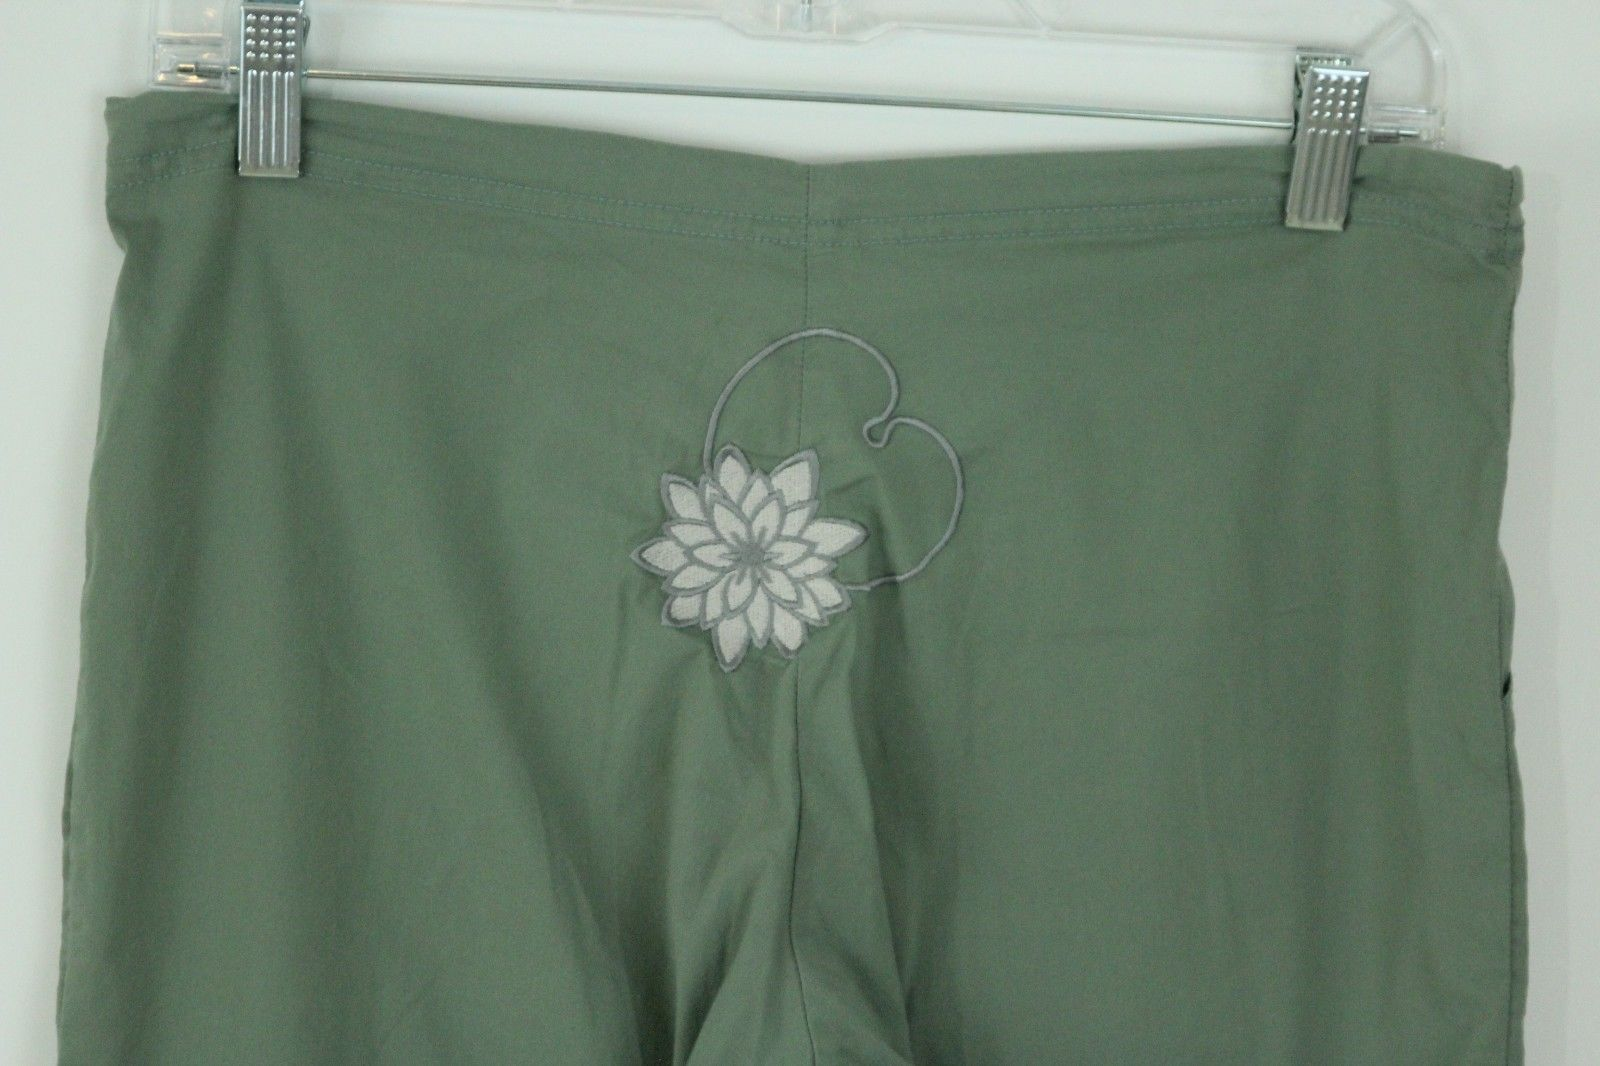 4f79131c8d Be Present Yoga Agility Pant Sage Green Size Small Lily Pad Lotus  Embroidered https:/